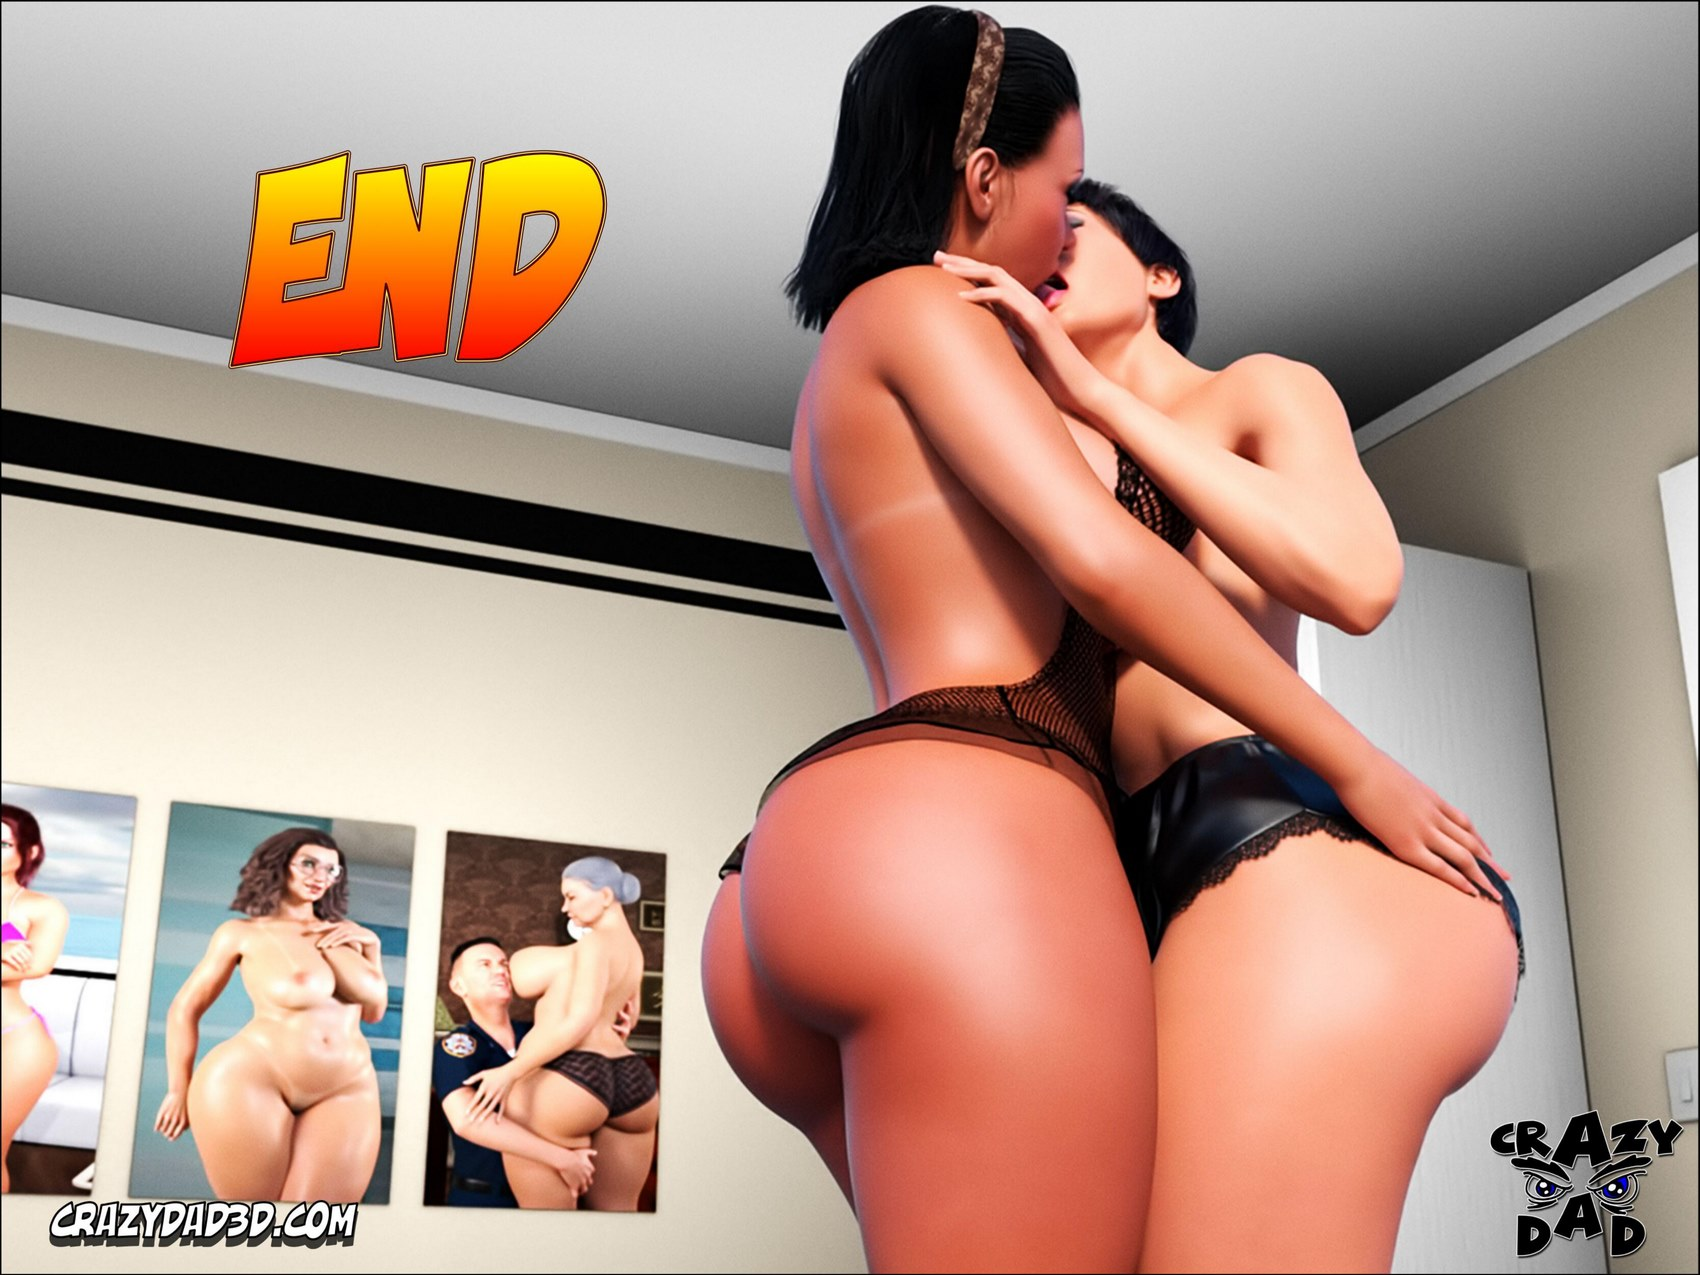 Love Me Tender Issue 6- CrazyDad3d